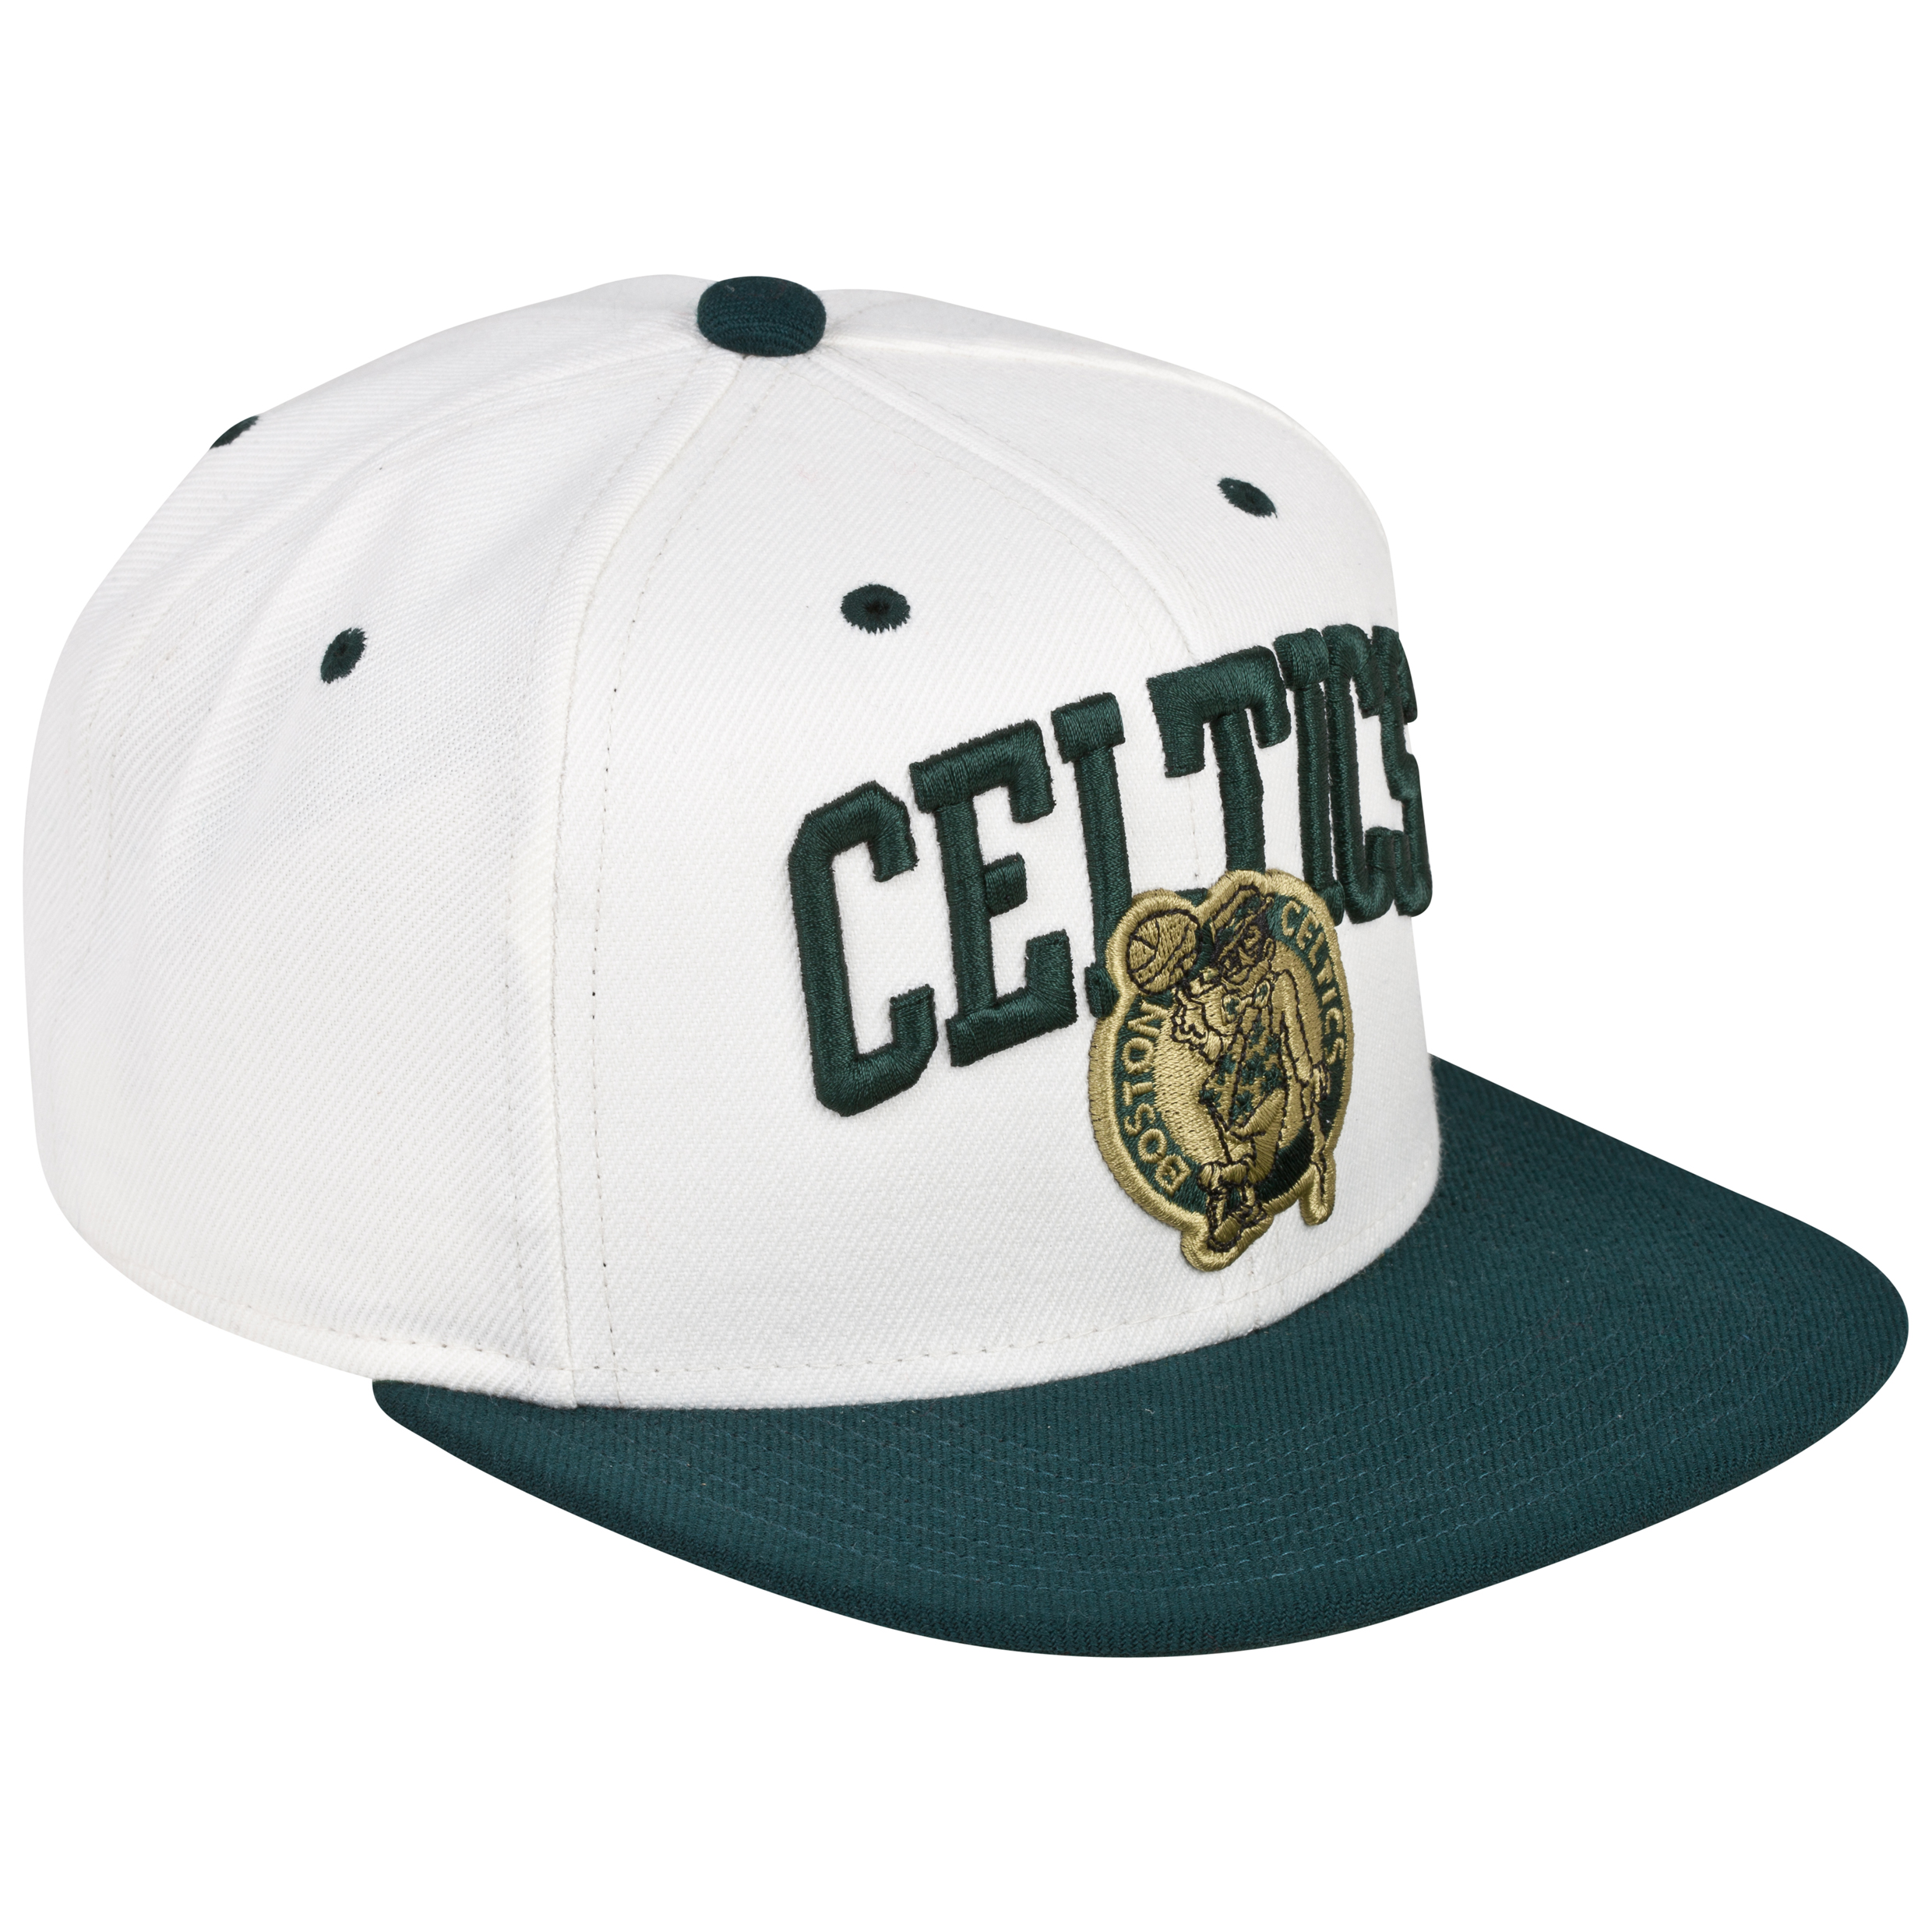 Boston Celtics Cream Arch Adjustor Snapback Cap Cream